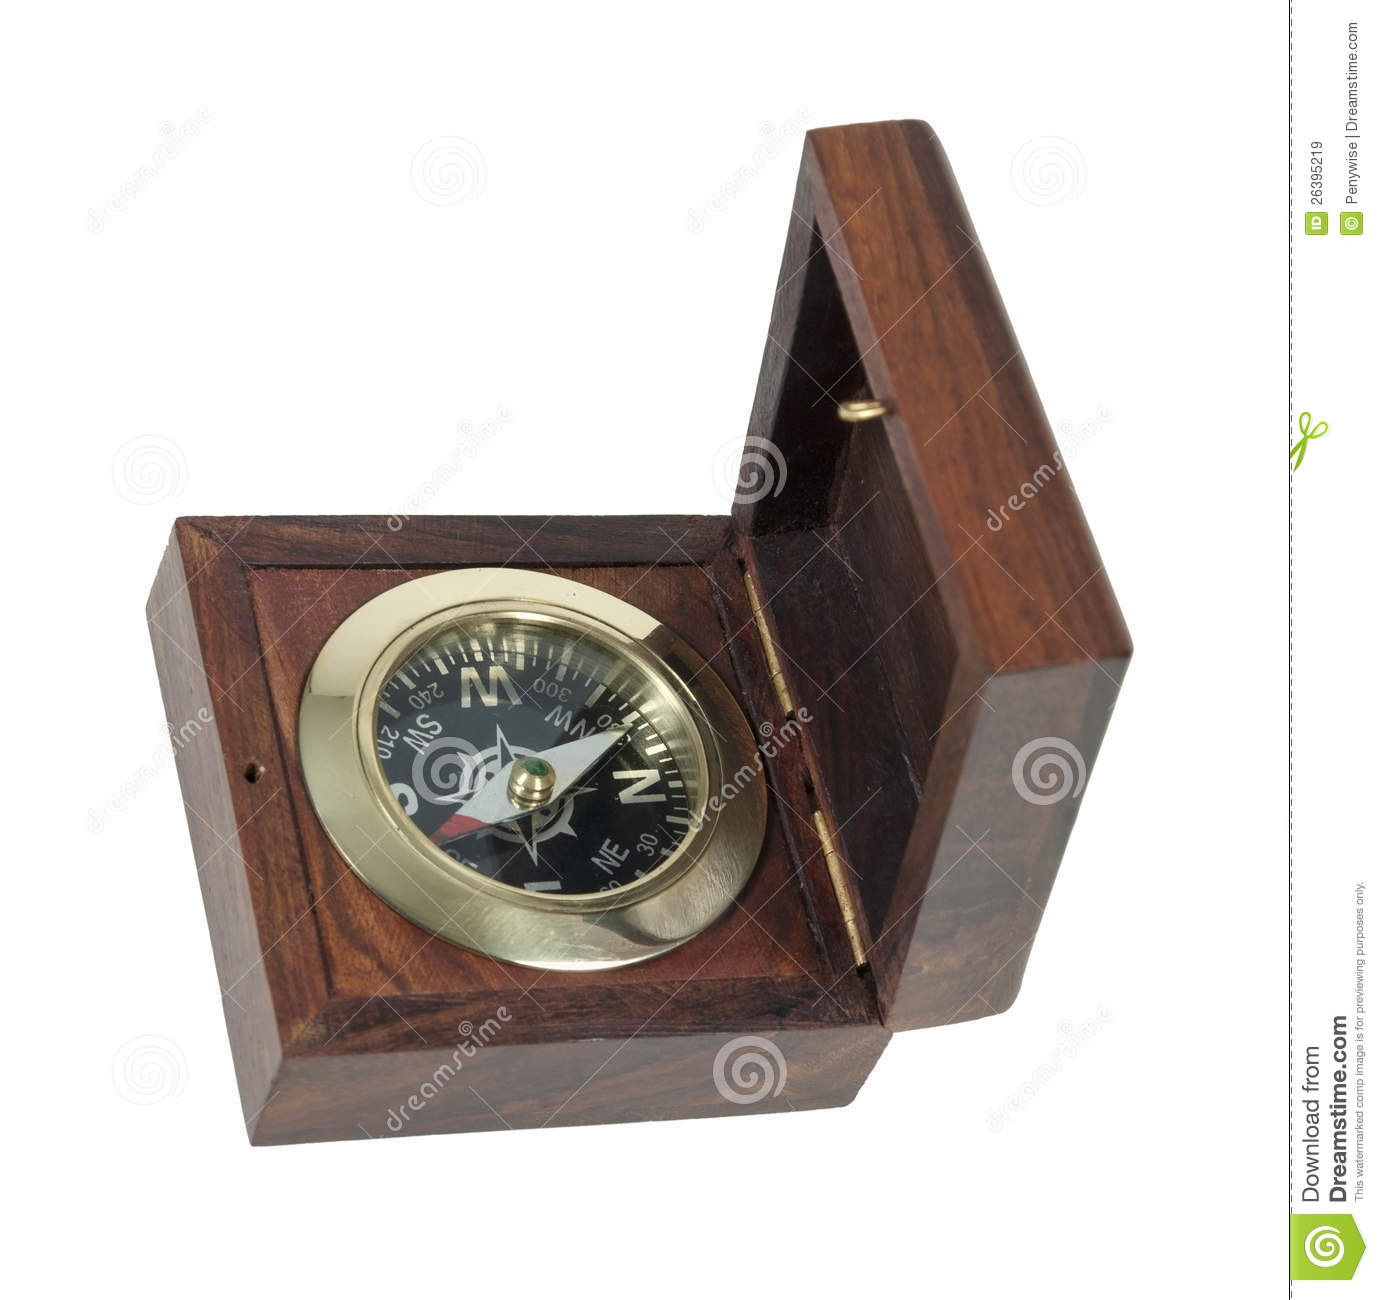 Compass in wooden box used for navigational purposes - path included.